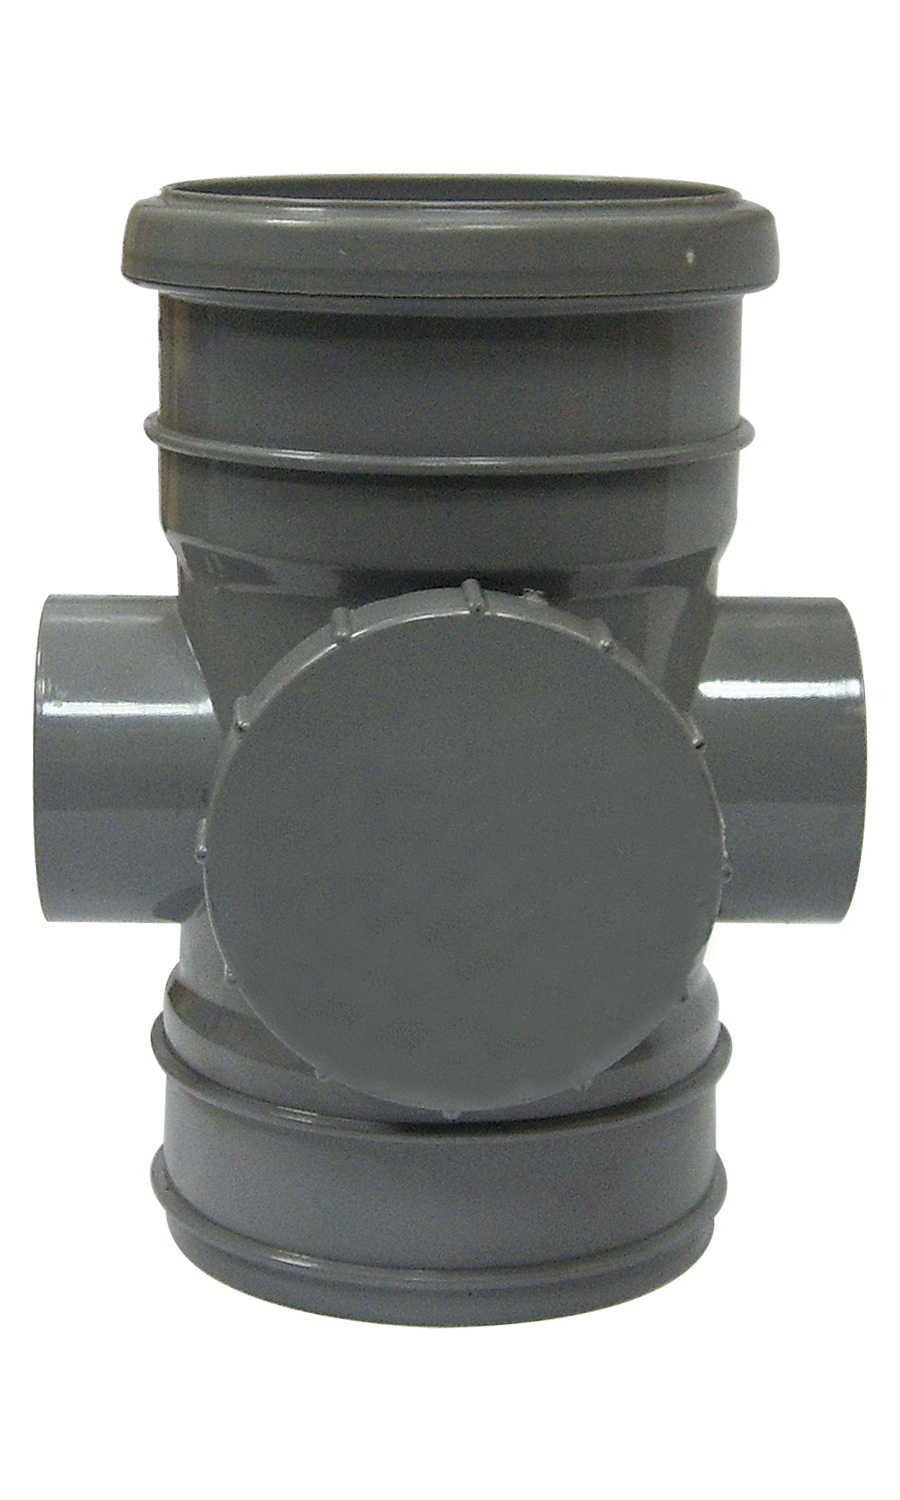 FLOPLAST 110MM RING SEAL SOIL SYSTEM - SP275 ACCESS PIPE - GREY